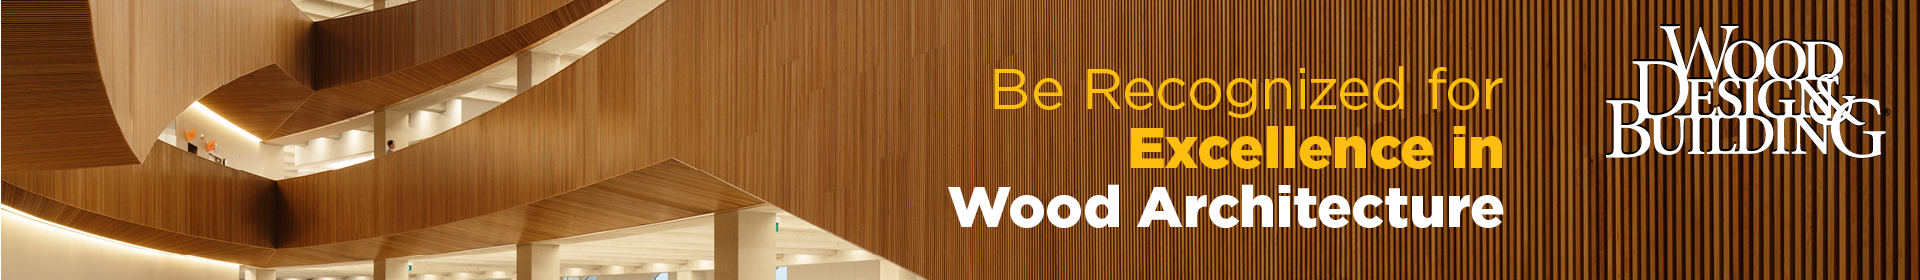 Wood Design Building Awards The Canadian Wood Council Cwc The Canadian Wood Council Cwc